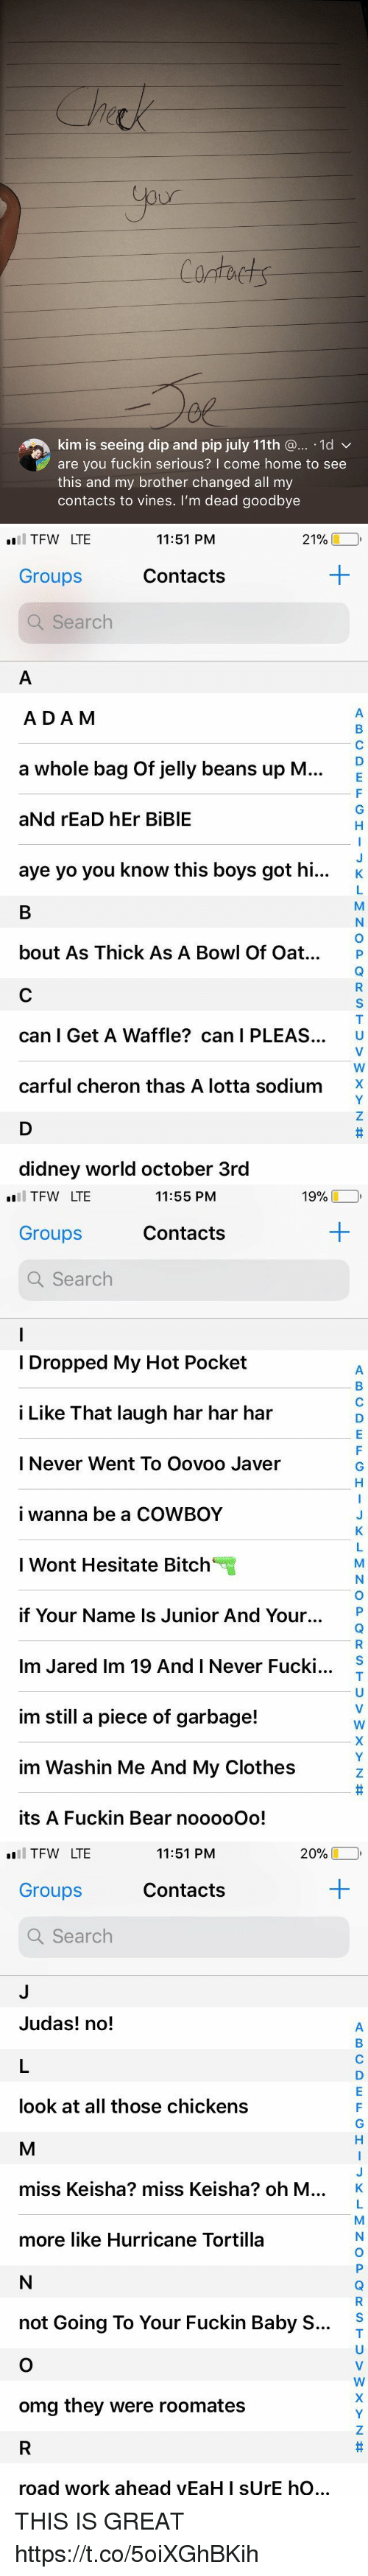 """Bitch, Clothes, and Omg: Contaets  kim is seeing dip and pip july 11th @... .1d v  are you fuckin serious? I come home to see  this and my brother changed all my  contacts to vines. I'm dead goodbye   TFW LTE  Groups  Q Search  11:51 PM  21%し  Contacts  ADA M  a whole bag of jelly beans up M  aNd rEaD hEr BiBlE  aye yo you know this boys got hi...  K  bout As Thick As A Bowl Of Oat. P  can I Get A Waffle? can I PLEAS. U  carful cheron thas A lotta sodium'X  didney world october 3rd   19%-,  l TFW LTE  Groups  Q Search  11:55 PM  Contacts  I Dropped My Hot Pocket  i Like That laugh har har har  I Never Went To Oovoo Javer  i wanna be a COWBOY  I Wont Hesitate Bitch""""  if Your Name Is Junior And Your.  Im Jared Im 19 And I Never Fucki  im still a piece of garbage!  im Washin Me And My Clothes  its A Fuckin Bear nooooOo!  S   20% □  l TFW LTE  Groups  Q Search  11:51 PM  Contacts  Judas! no!  look at all those chickens  miss Keisha? miss Keisha? oh M  K  more like Hurricane Tortilla  S  not Going To Your Fuckin Baby S...  omg they were roomates  ro  ad work ahead yEaH I sUrE  hO THIS IS GREAT https://t.co/5oiXGhBKih"""